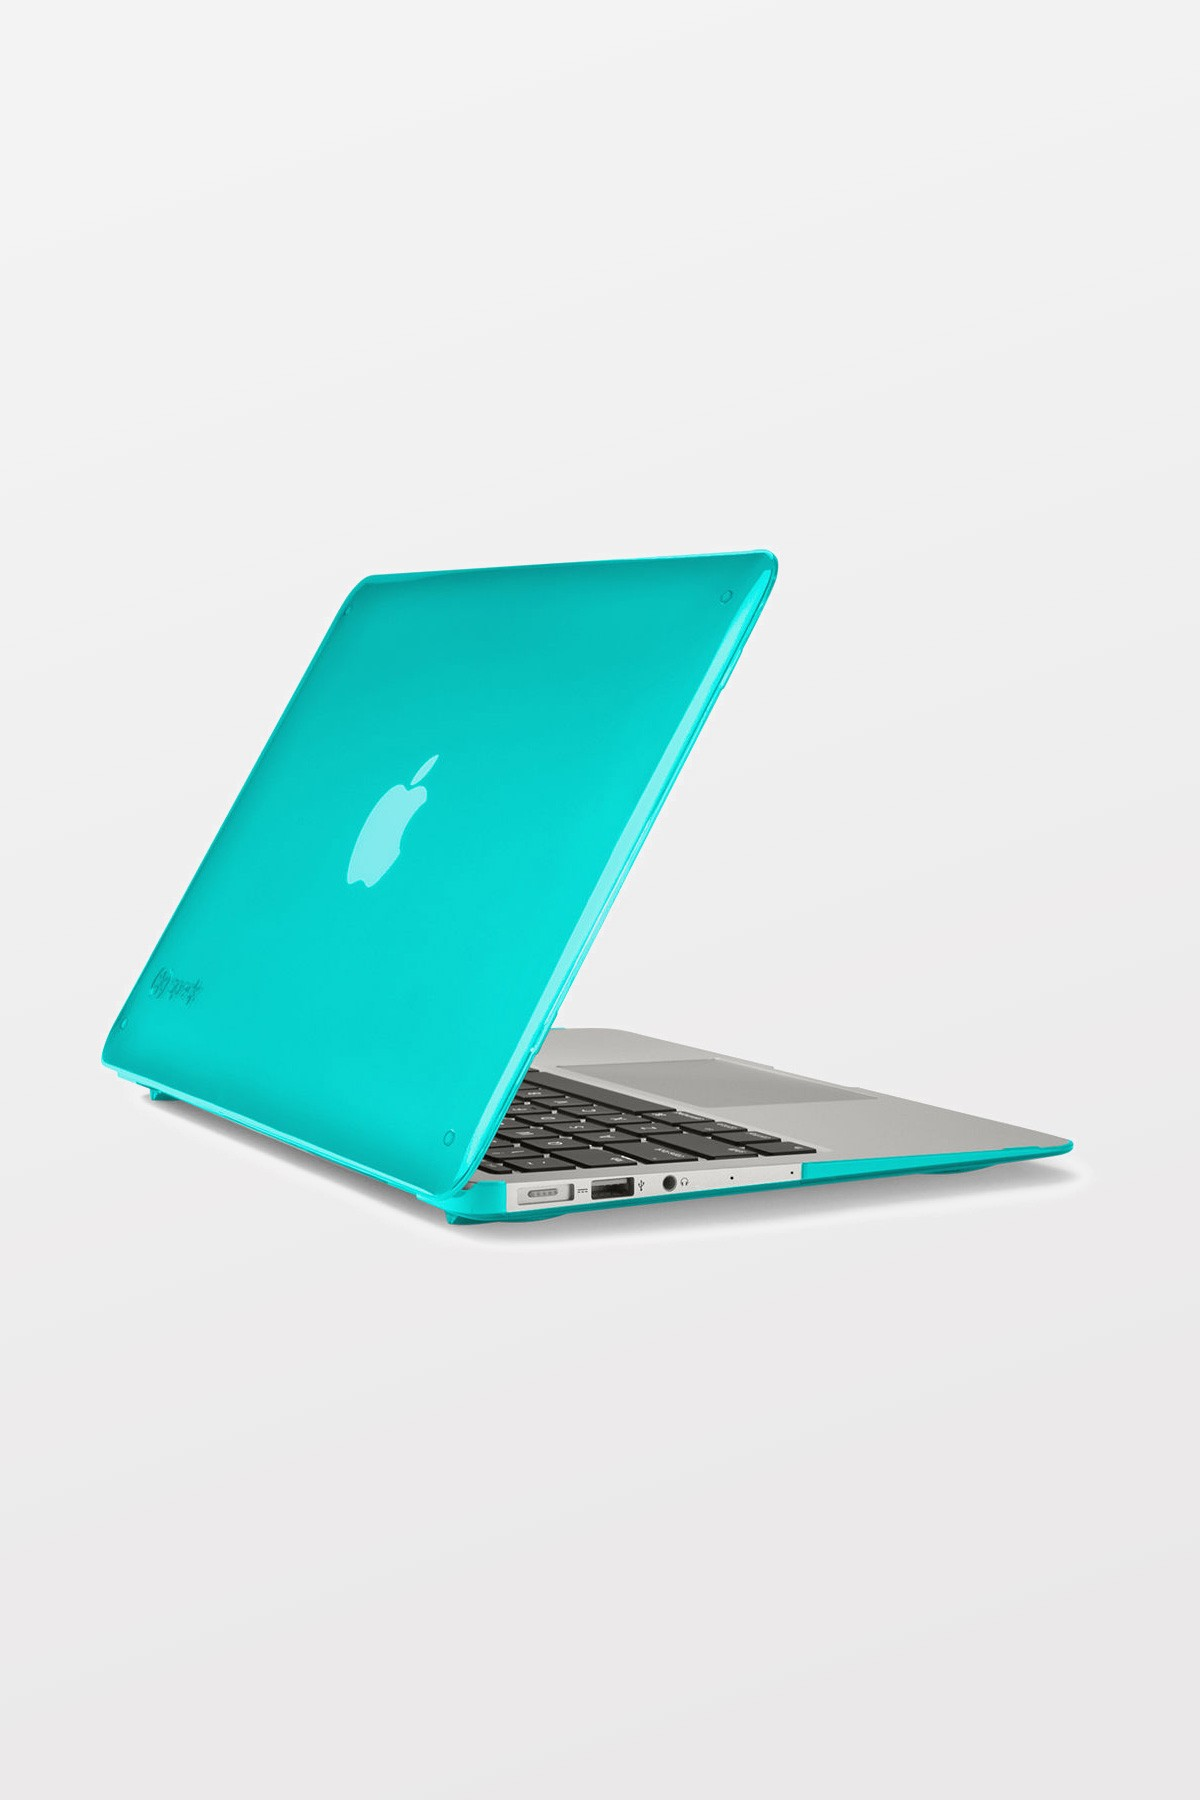 Speck MacBook Air 11-inch SeeThru Calypso Blue